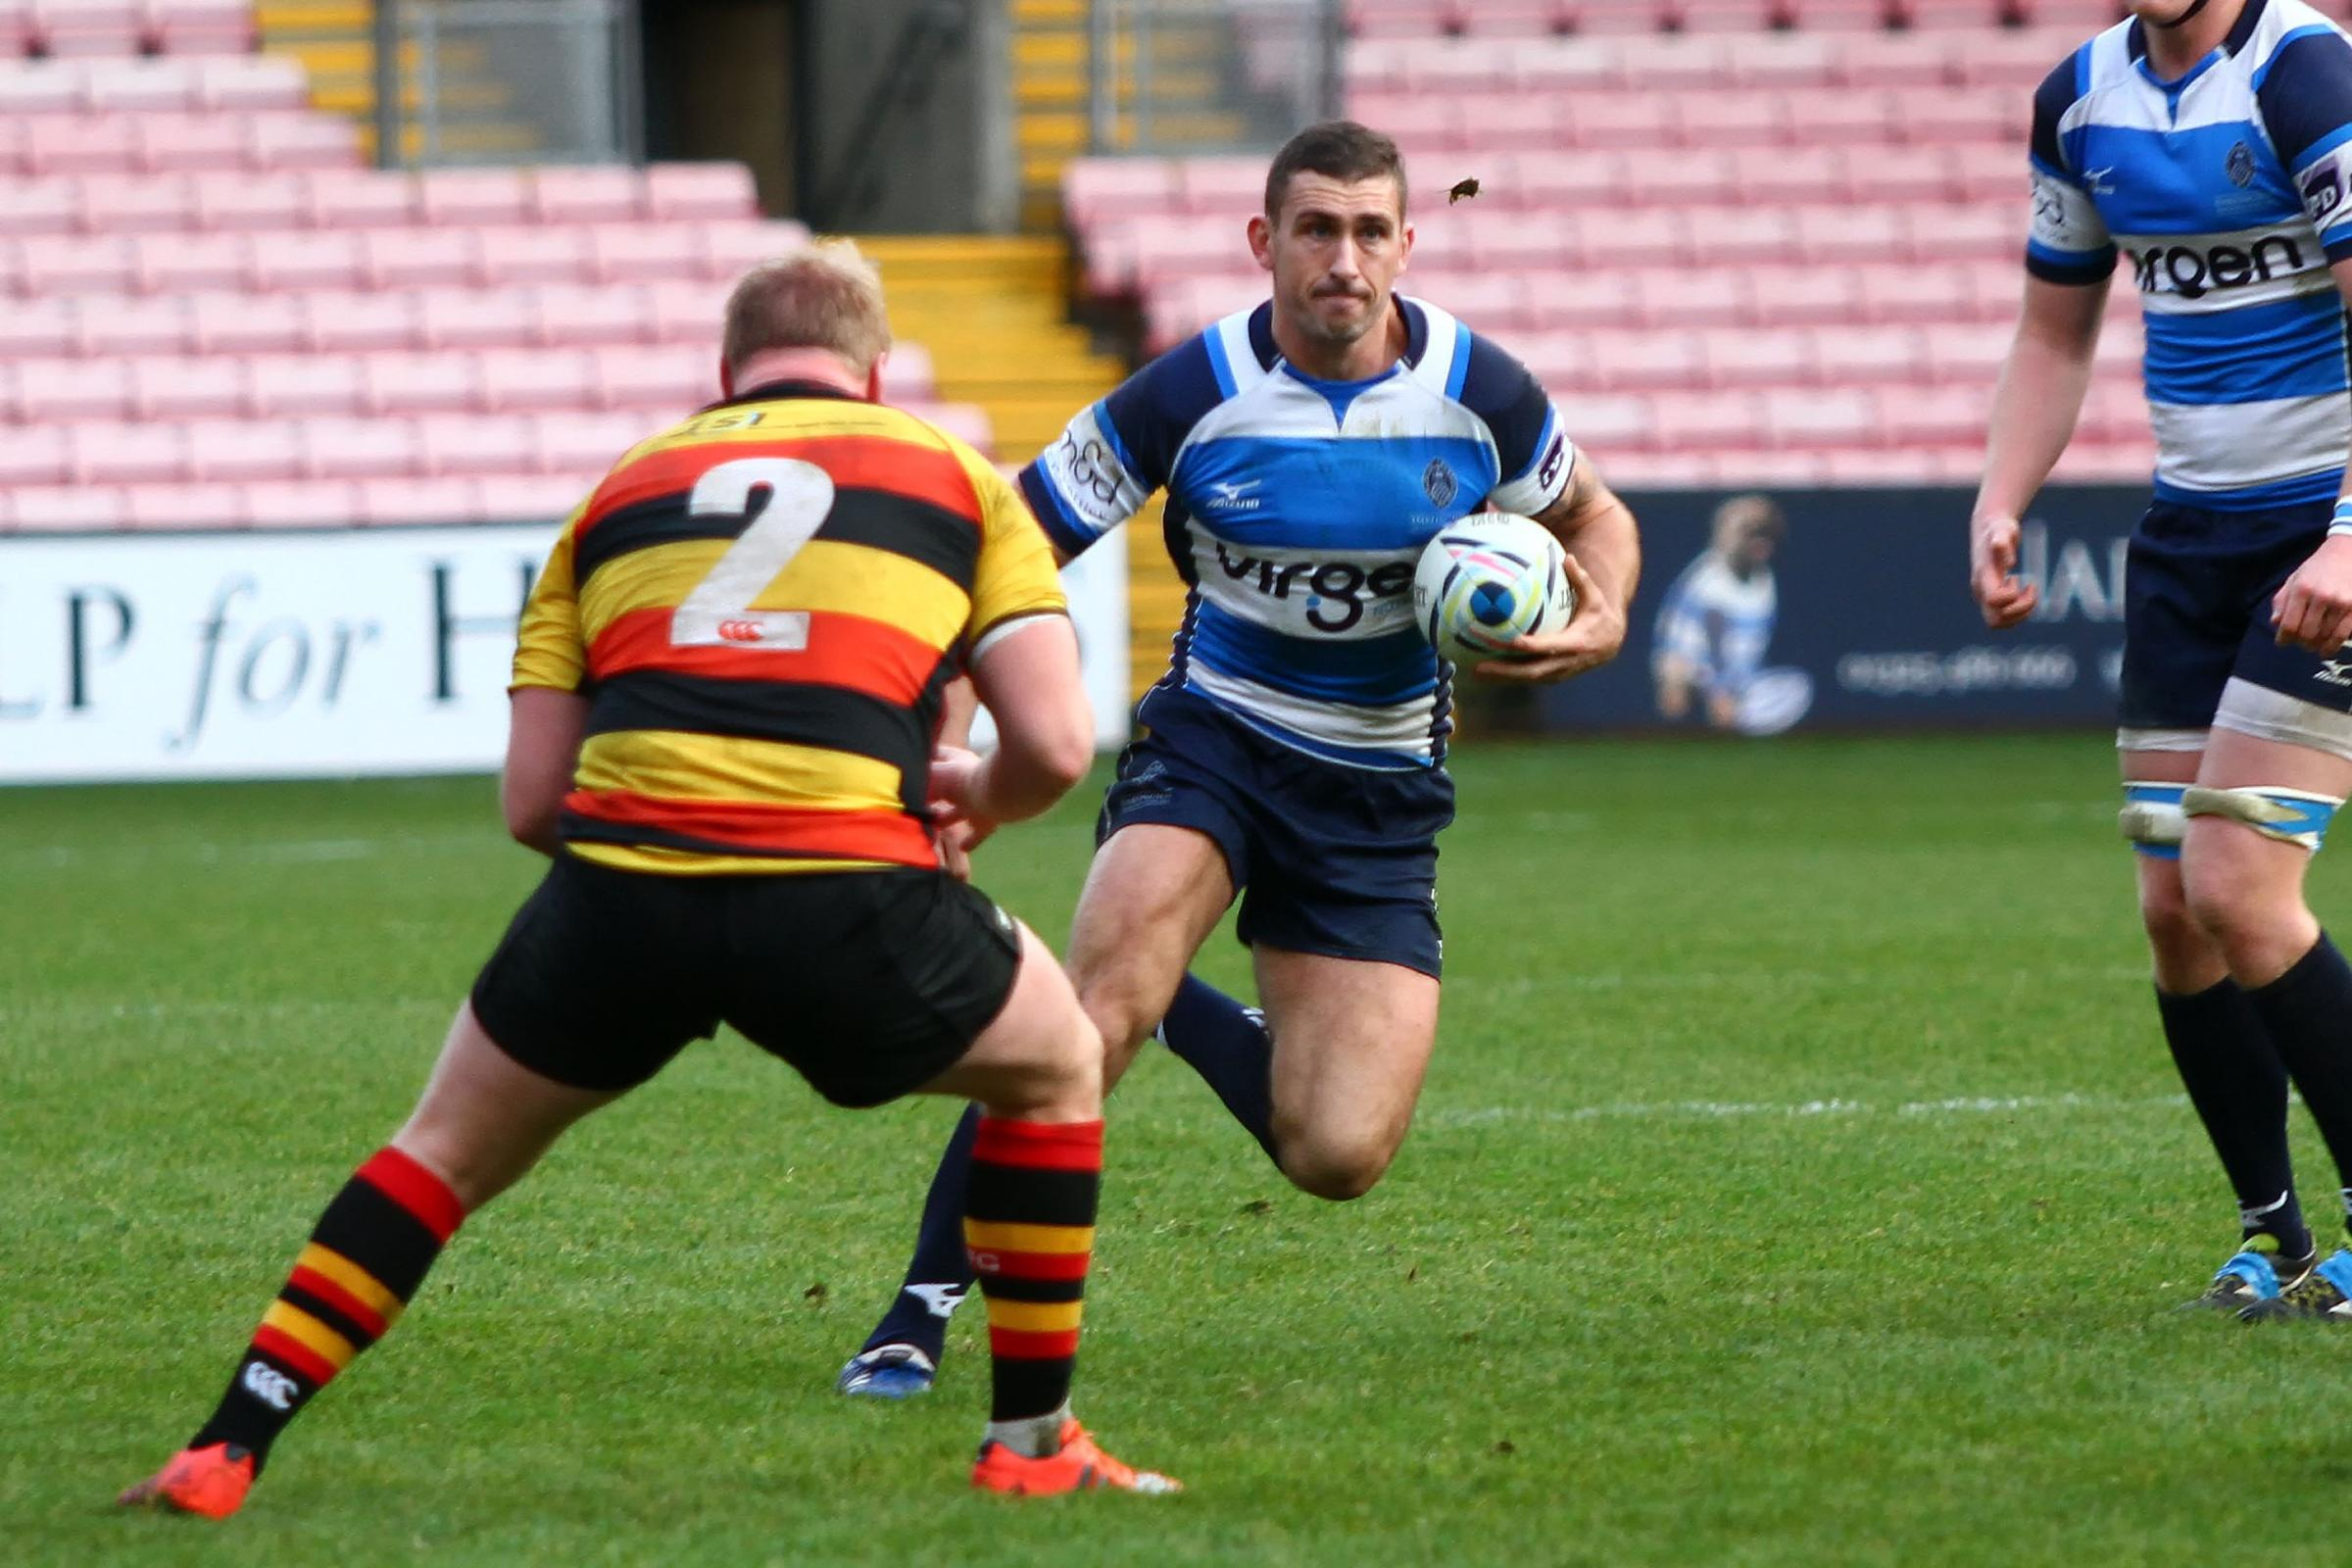 Garry Law of Darlington Mowden Park